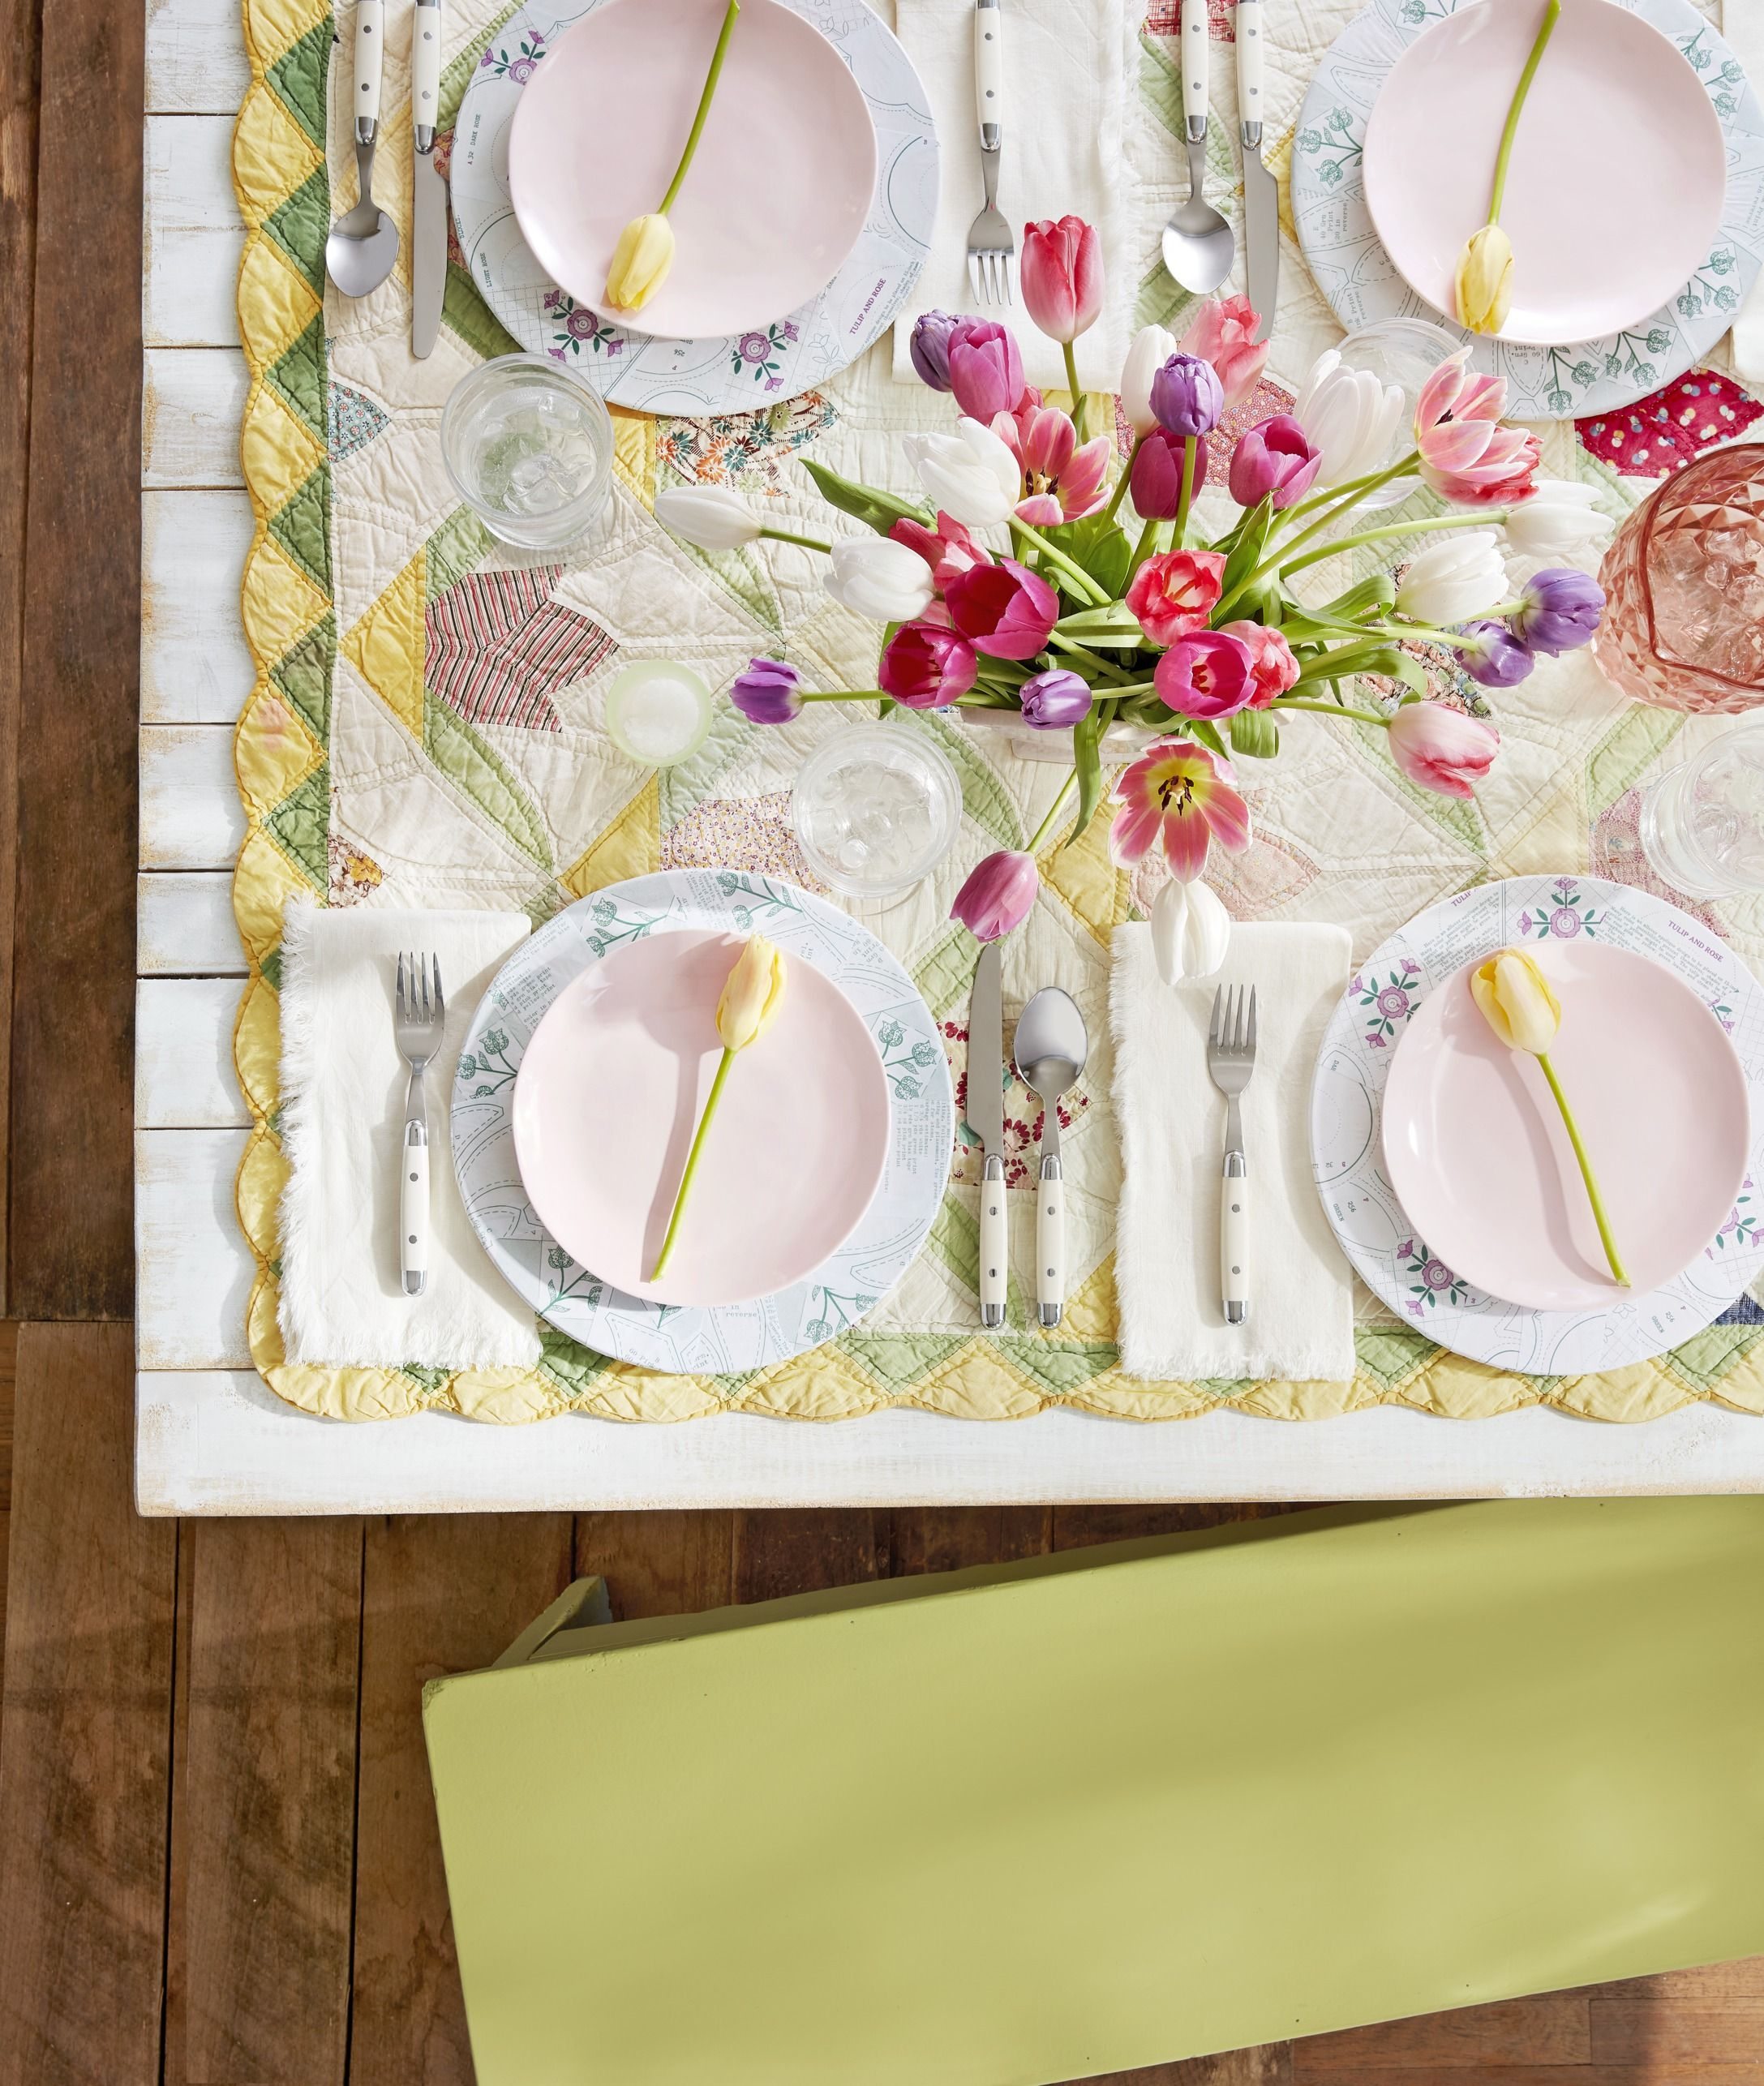 quilt tablecloth easter table decoration